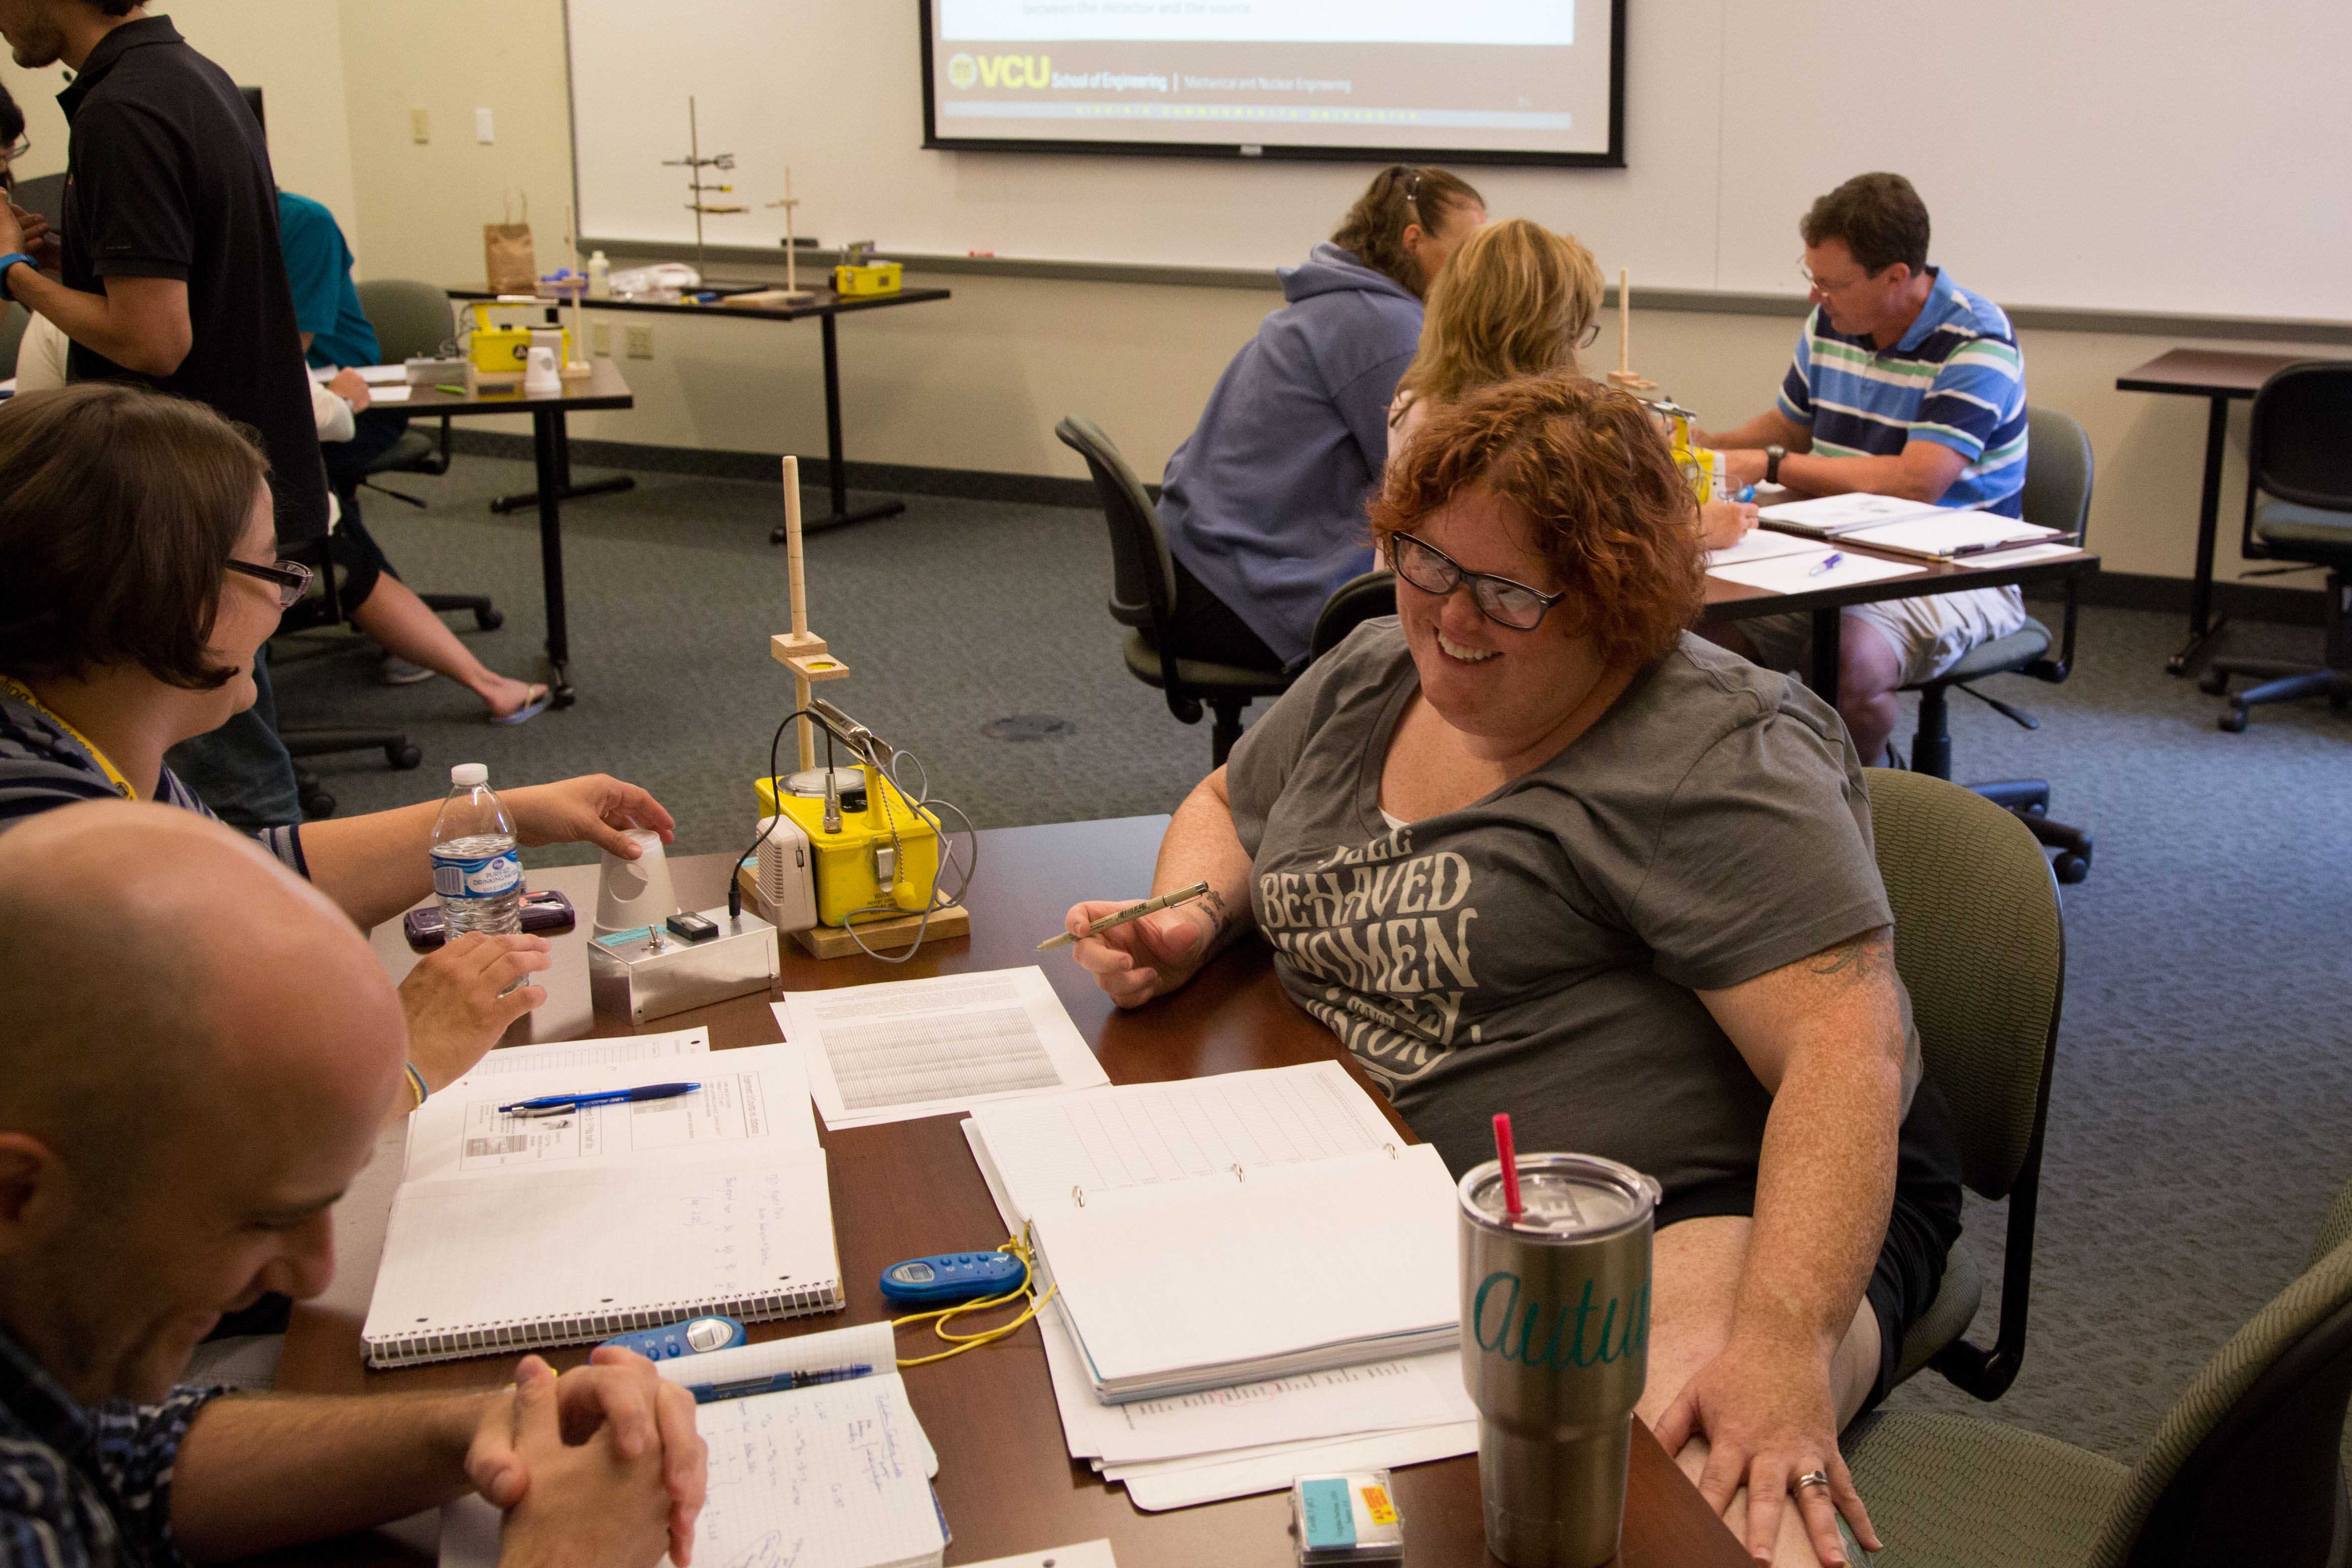 science-teachers-workshop-07-2016-5685_28047088750_o